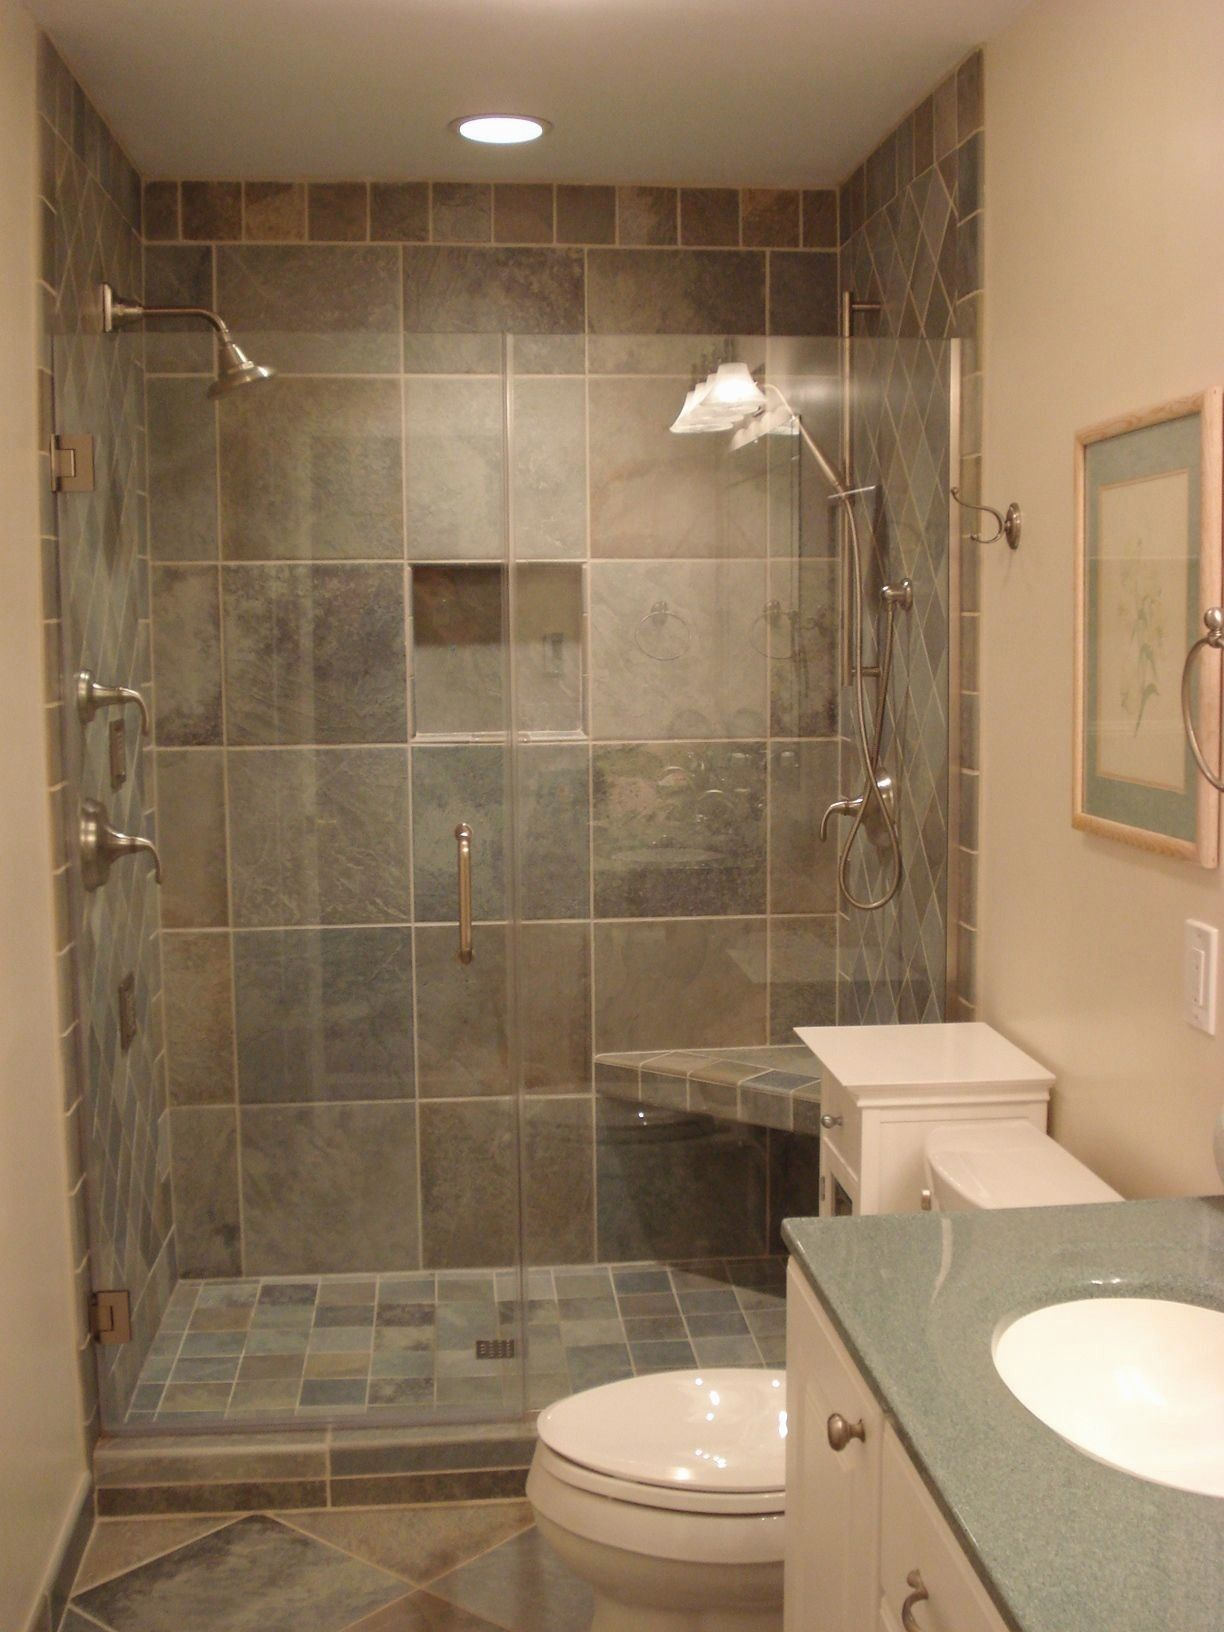 50 Images How Much Does Bathroom Remodel Cost Small Bathroom Makeover Bathroom Remodel Shower Bathroom Remodel Pictures